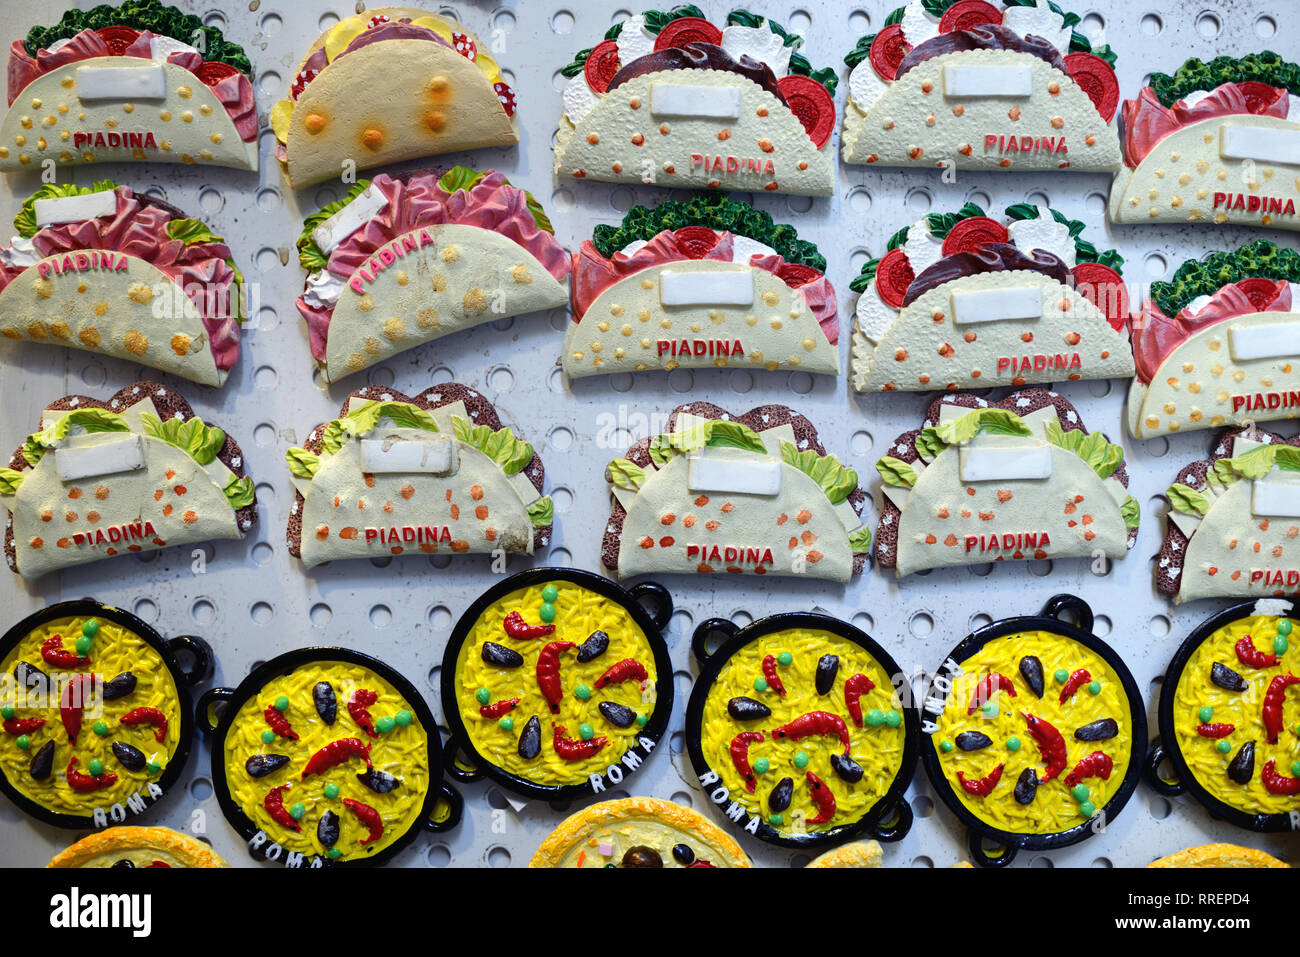 Souvenir Fridge Magnets of Italian Food Dishes including Piadina Flatbread Sandwiches, Frittata Omelettes & Pizza For Sale in Gift Shop Rome Italy - Stock Image